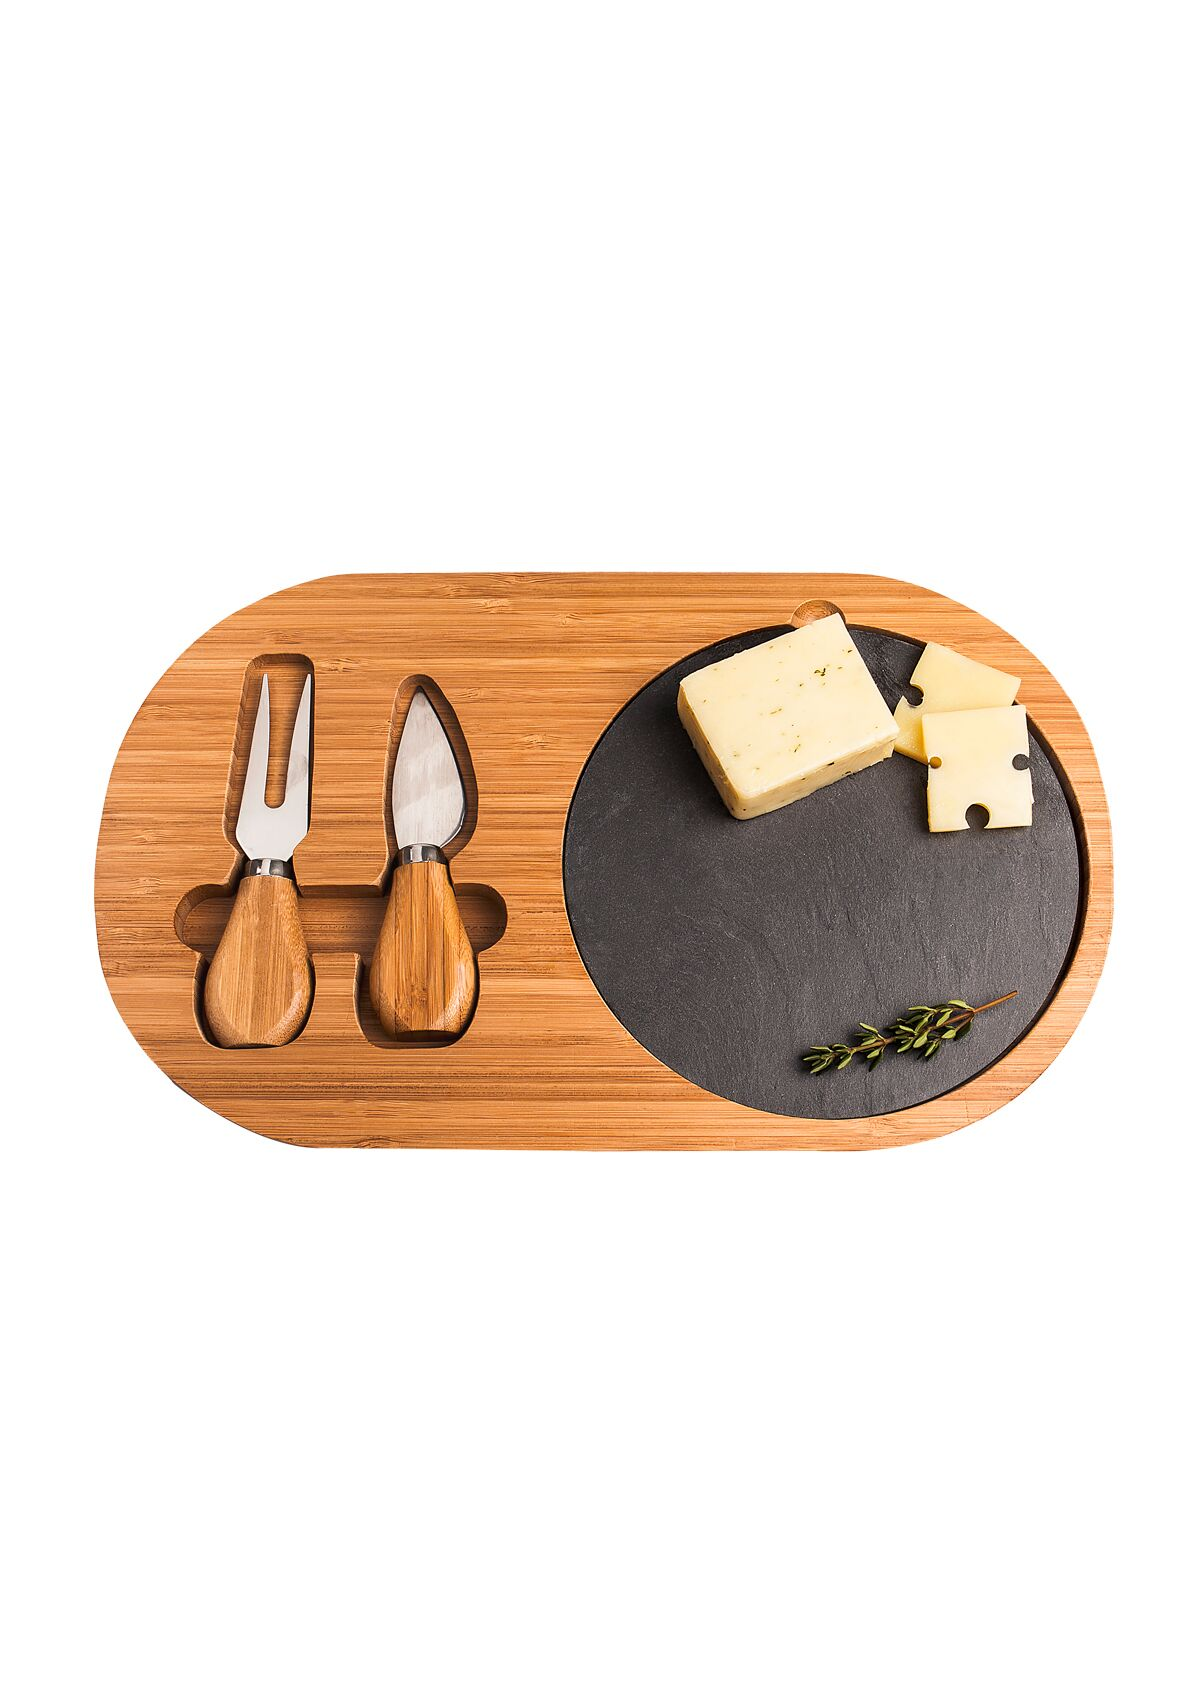 Cathys Concepts 2168 Bamboo & Slate Cheese Board Set with Utensils